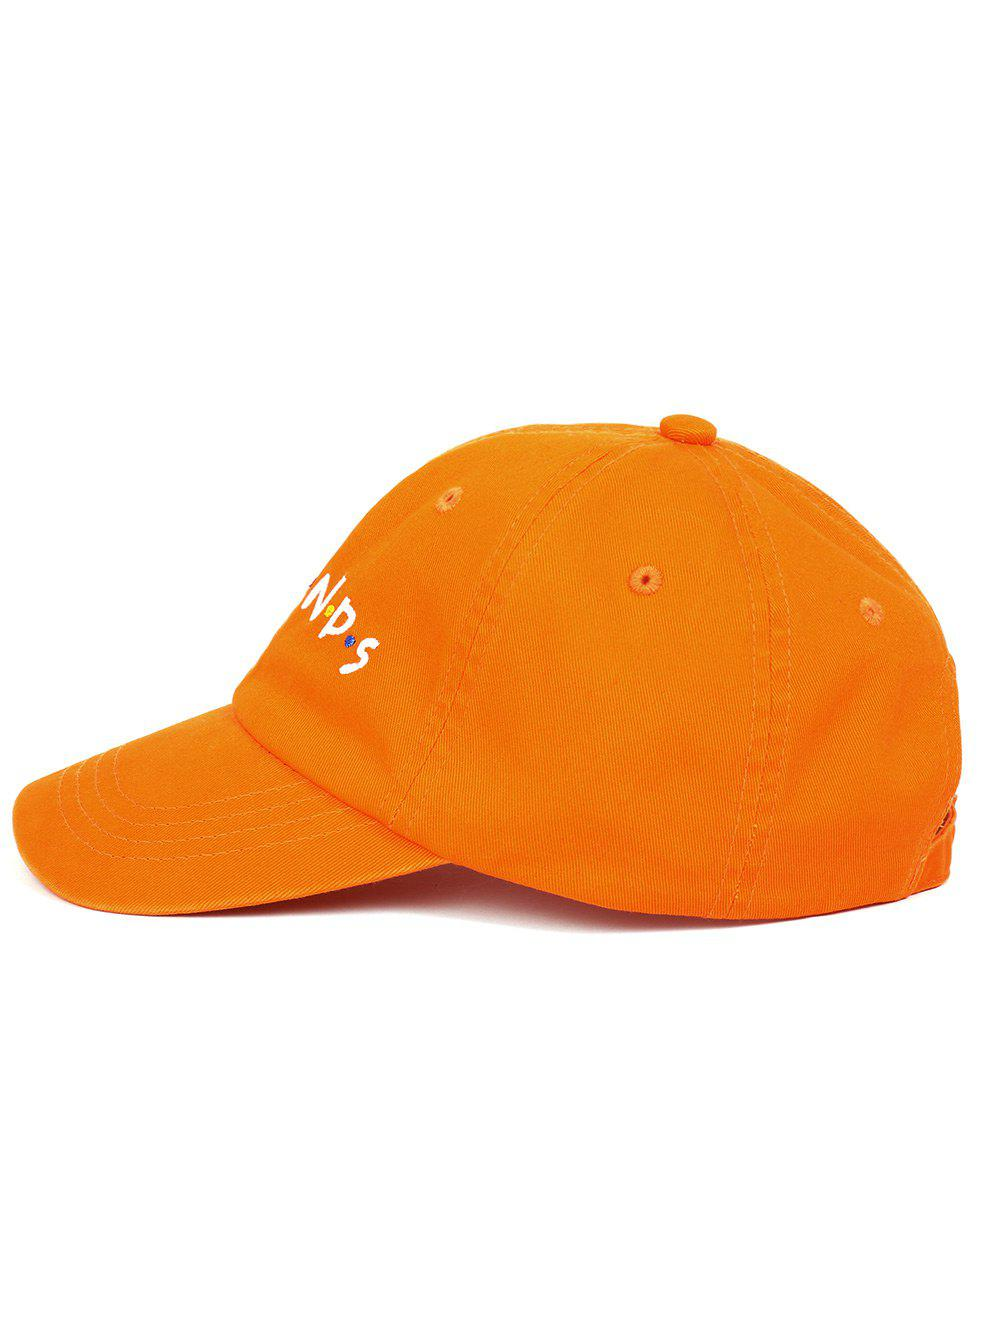 Outdoor FRIENDS Pattern Embroidery Graphic Hat - ORANGE